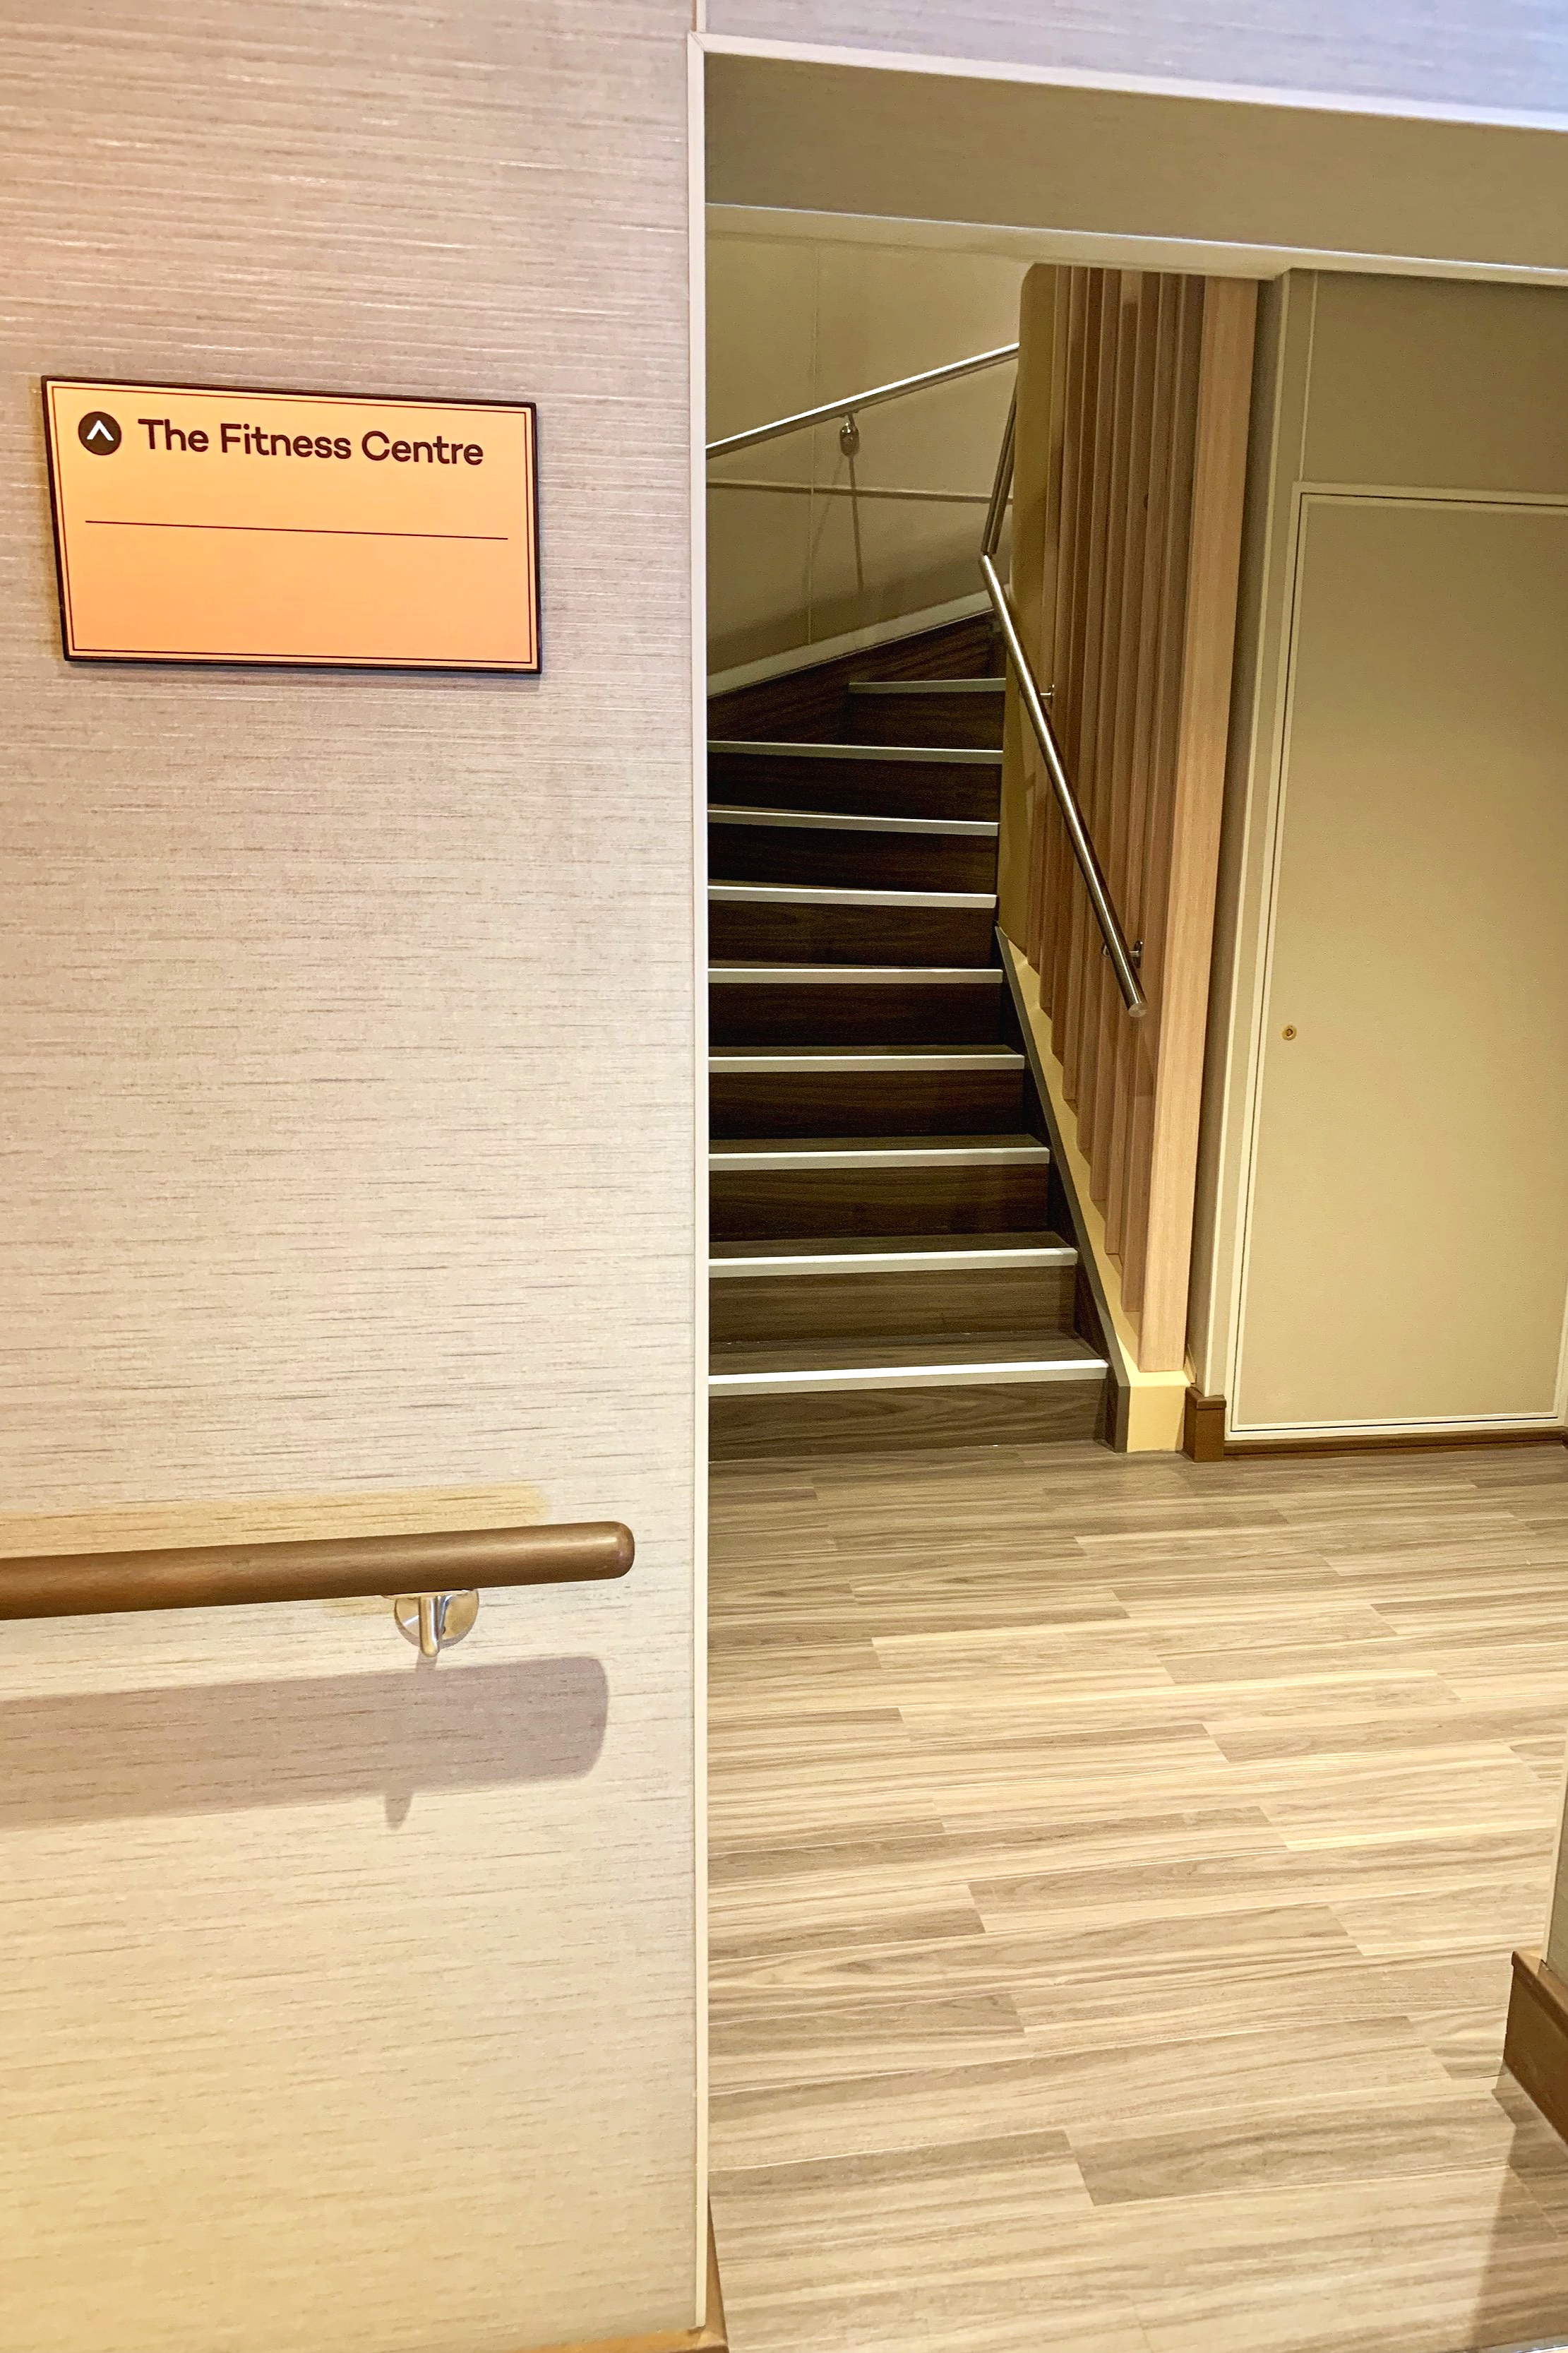 You have to be looking hard to find the somewhat hidden entrance to the gym!